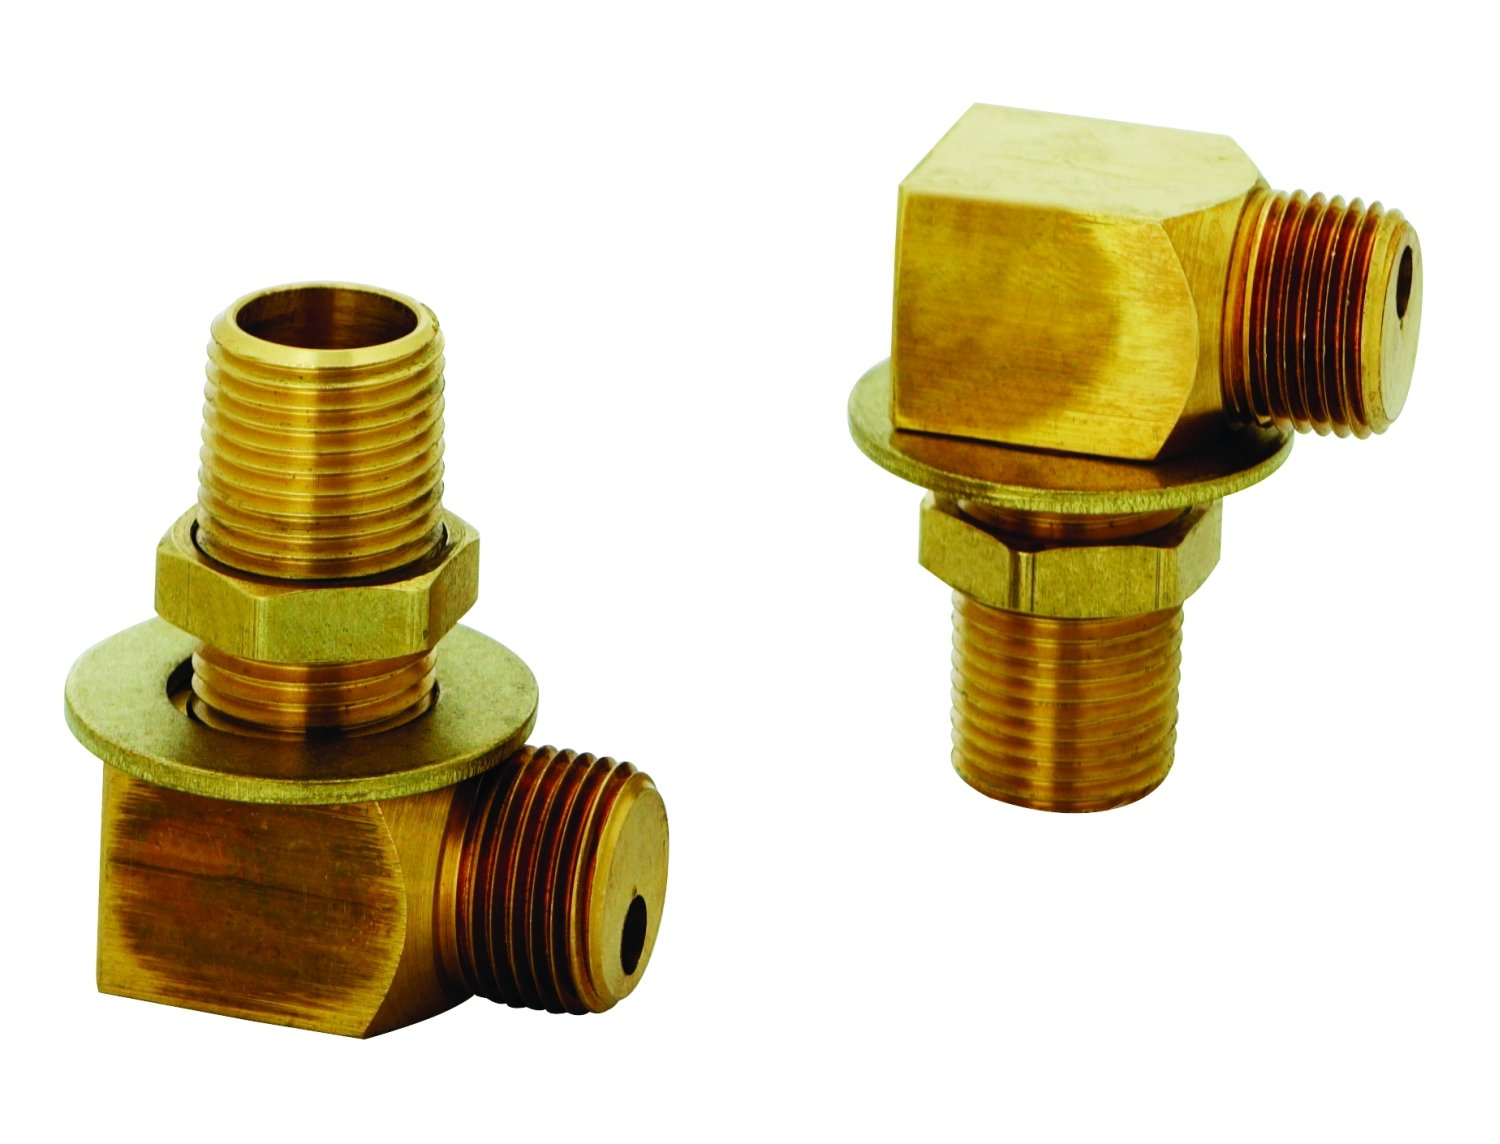 TS Brass B-0230-K Installation Kit for B-0230 Style Faucets - Faucet ...